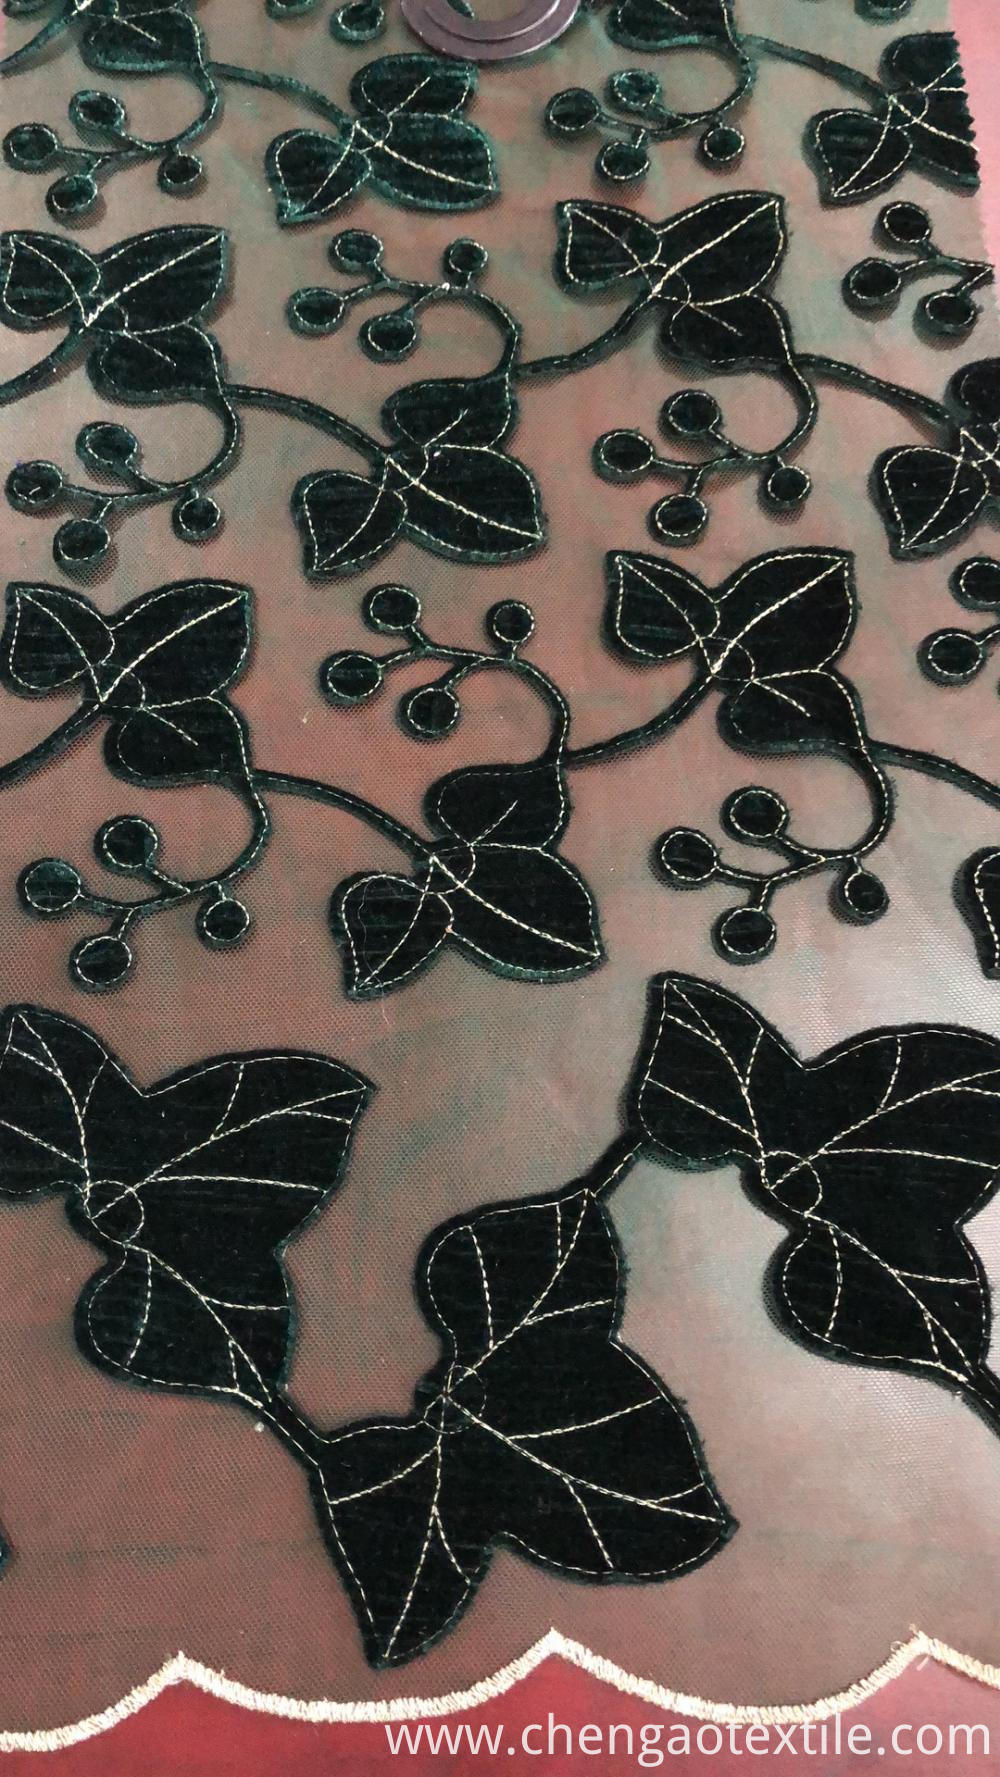 Black leaves design Mesh Embroider Fabric